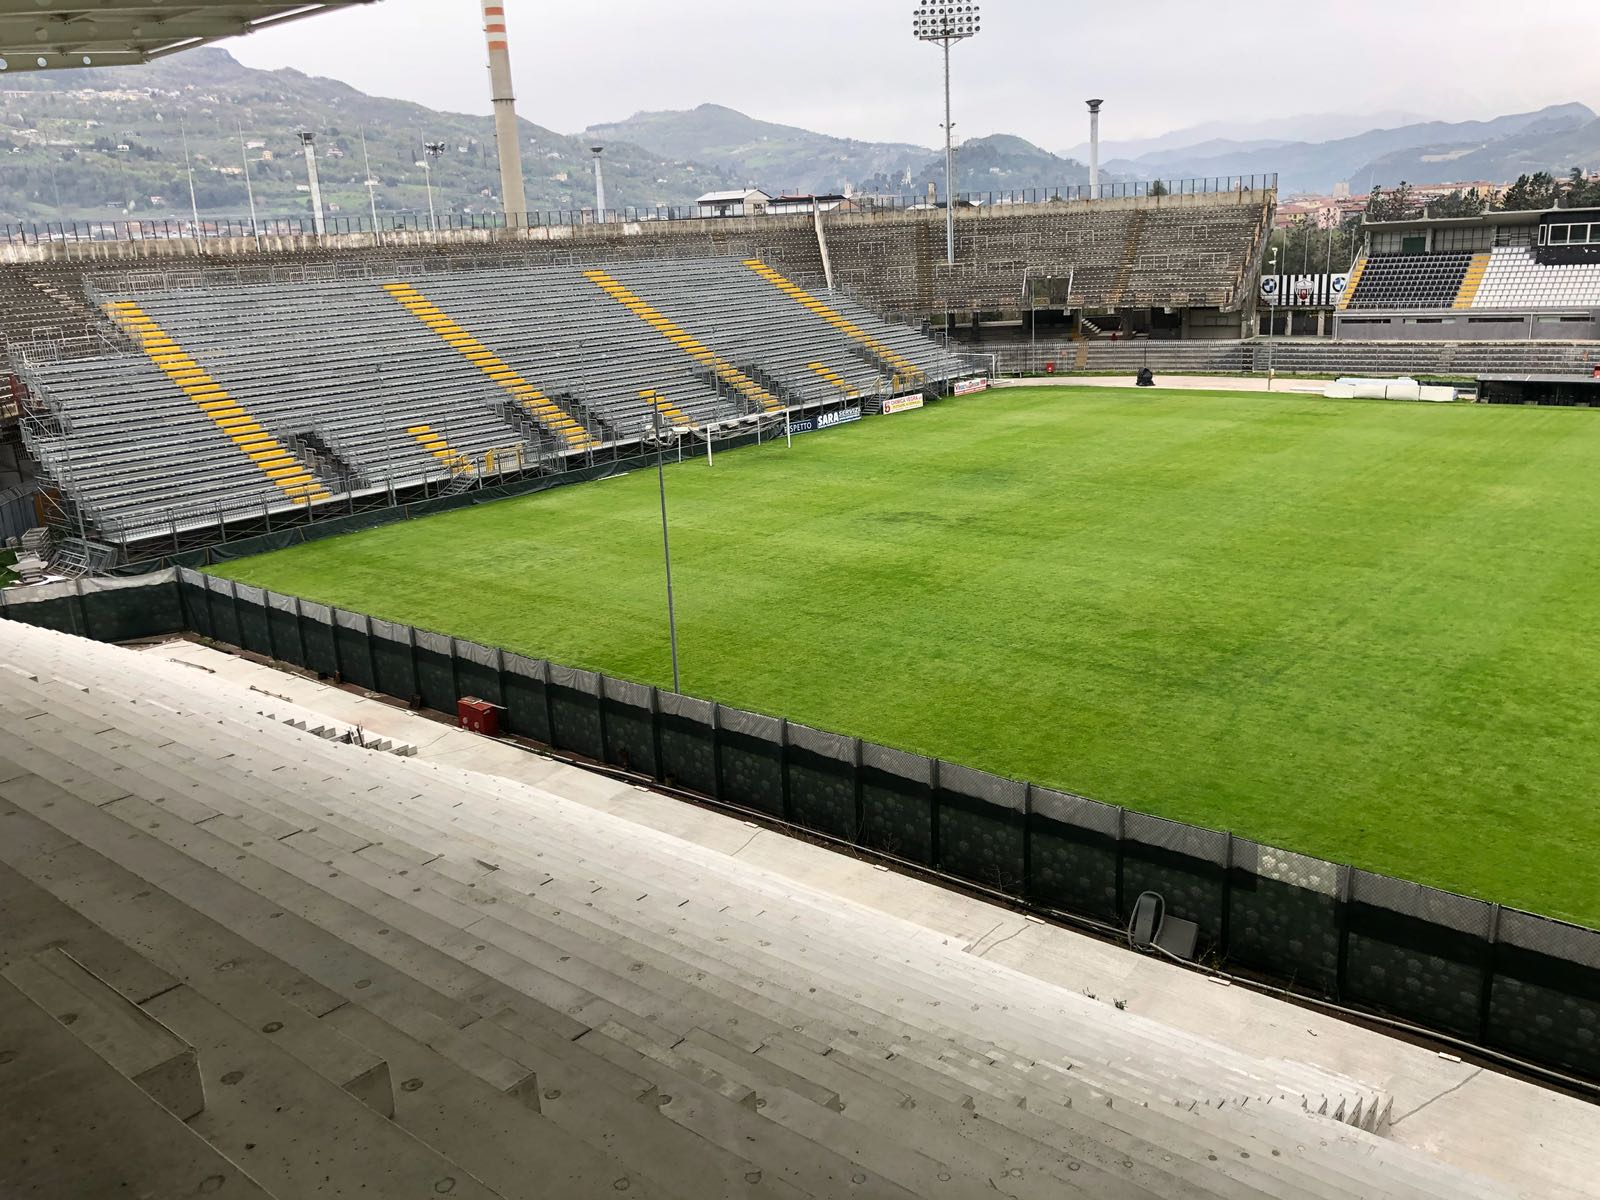 tribuna stadio ascoli 2018-09-08 at 17.45.13